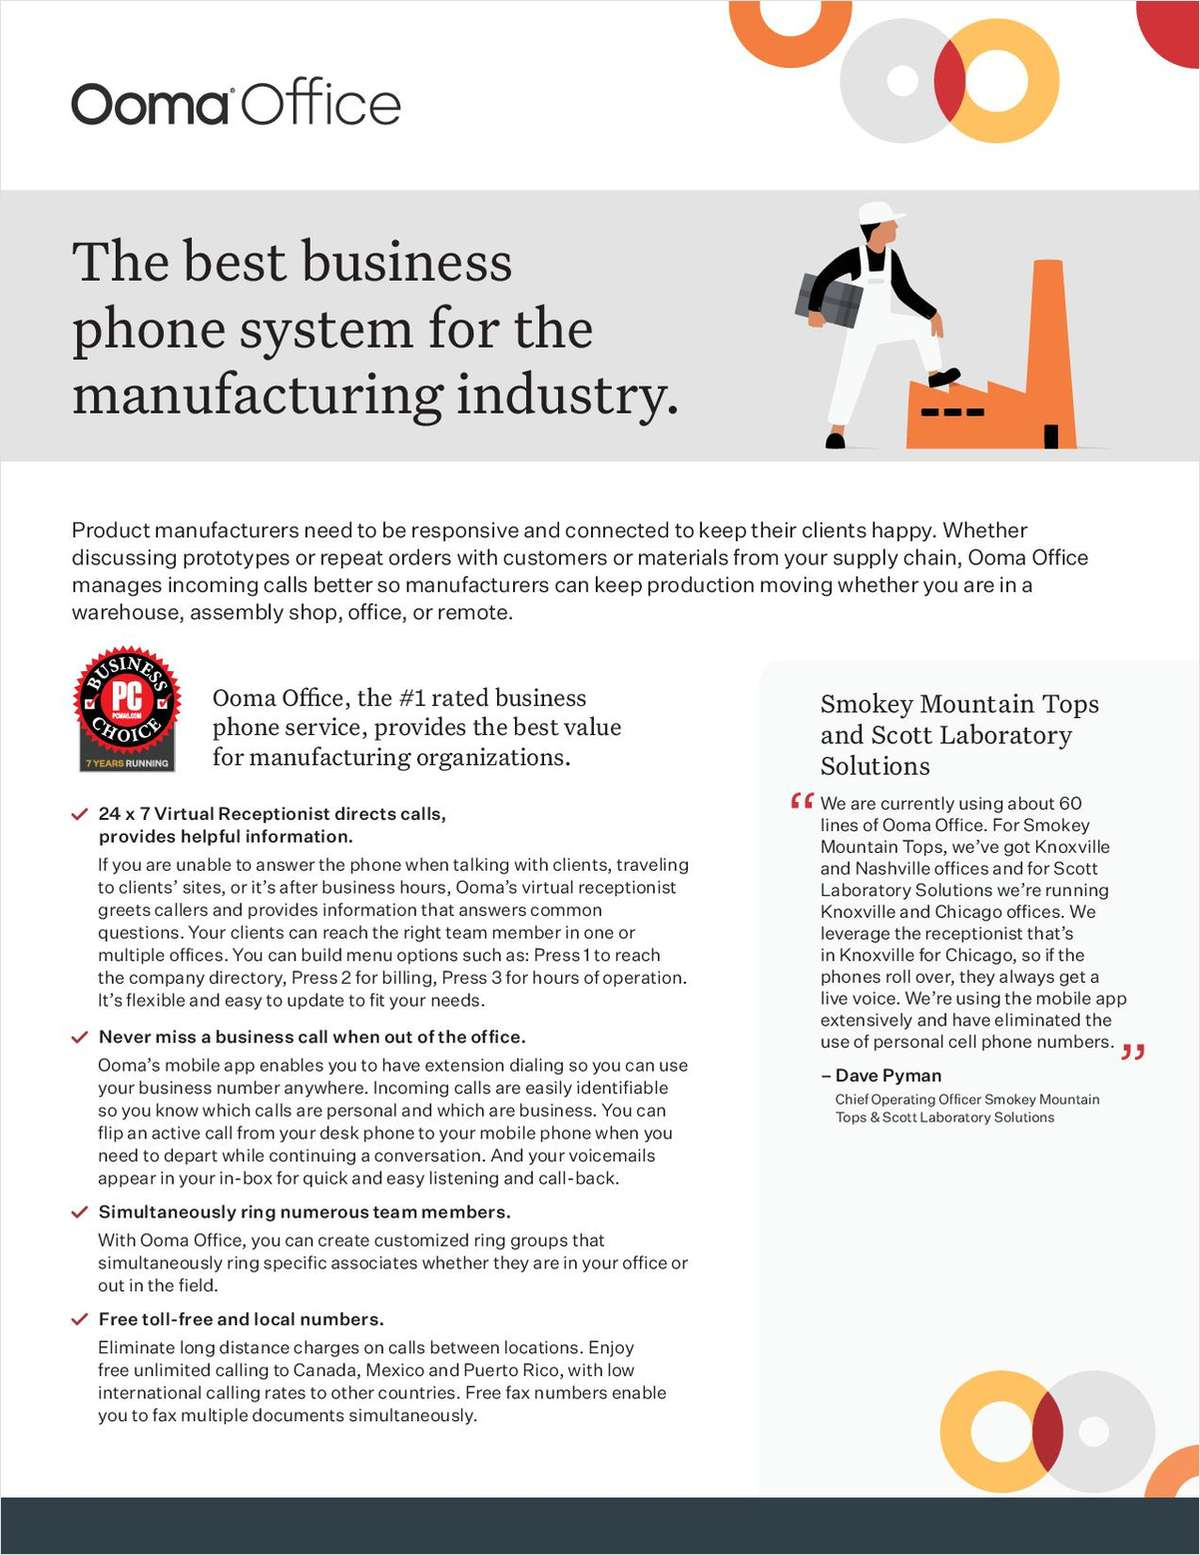 The best business phone system for the manufacturing industry